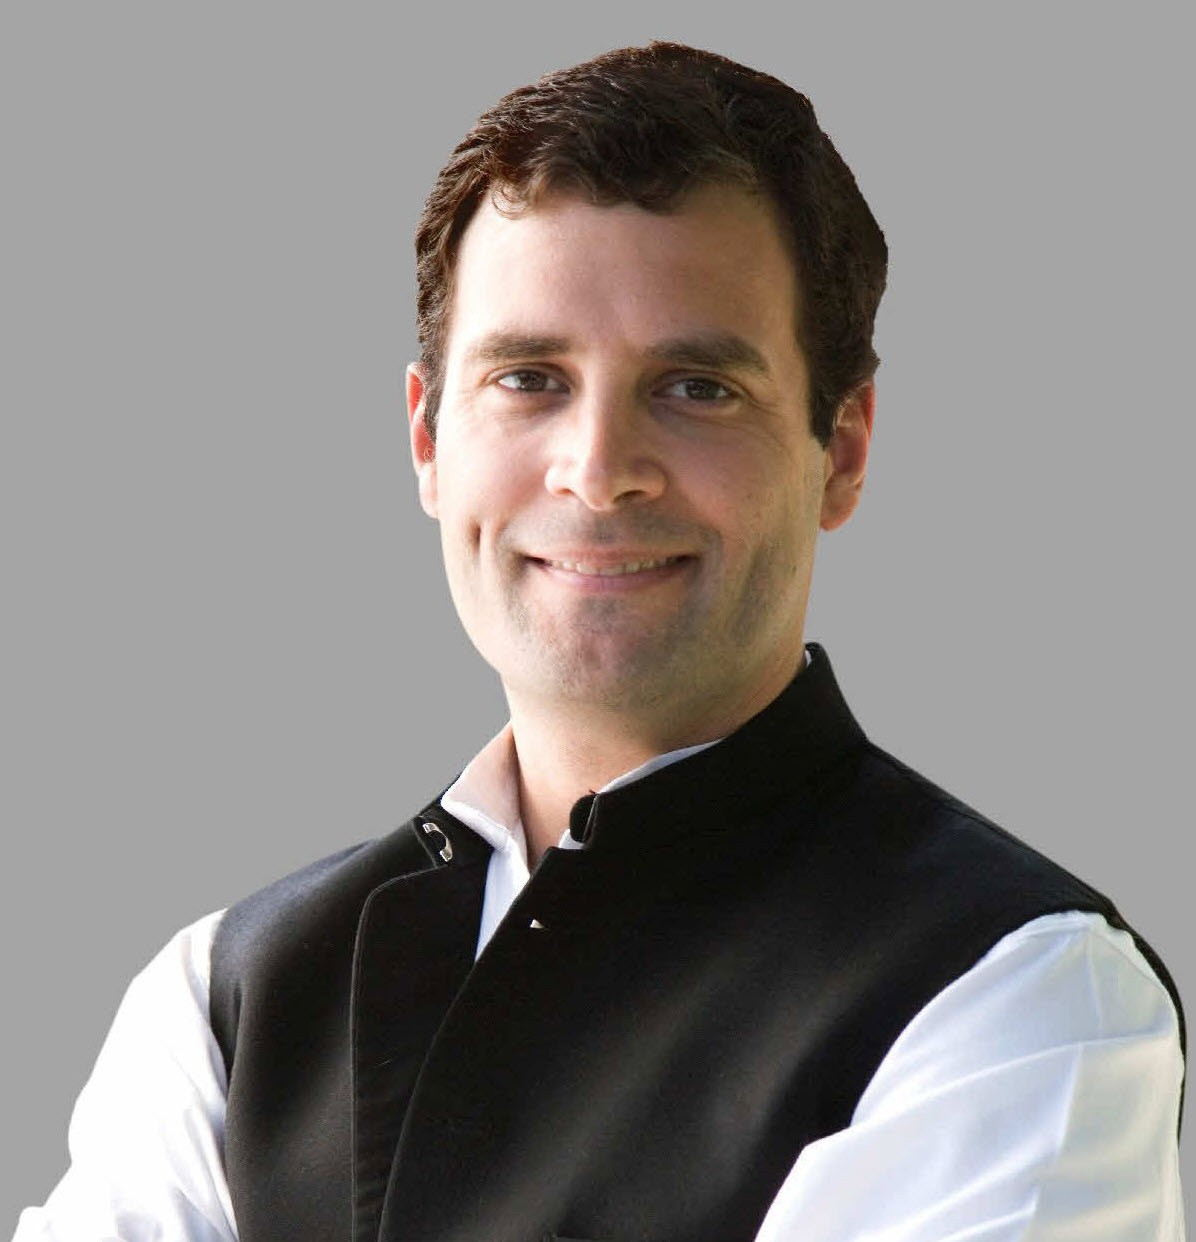 rahul-gandhi-young-leader-hd-photos